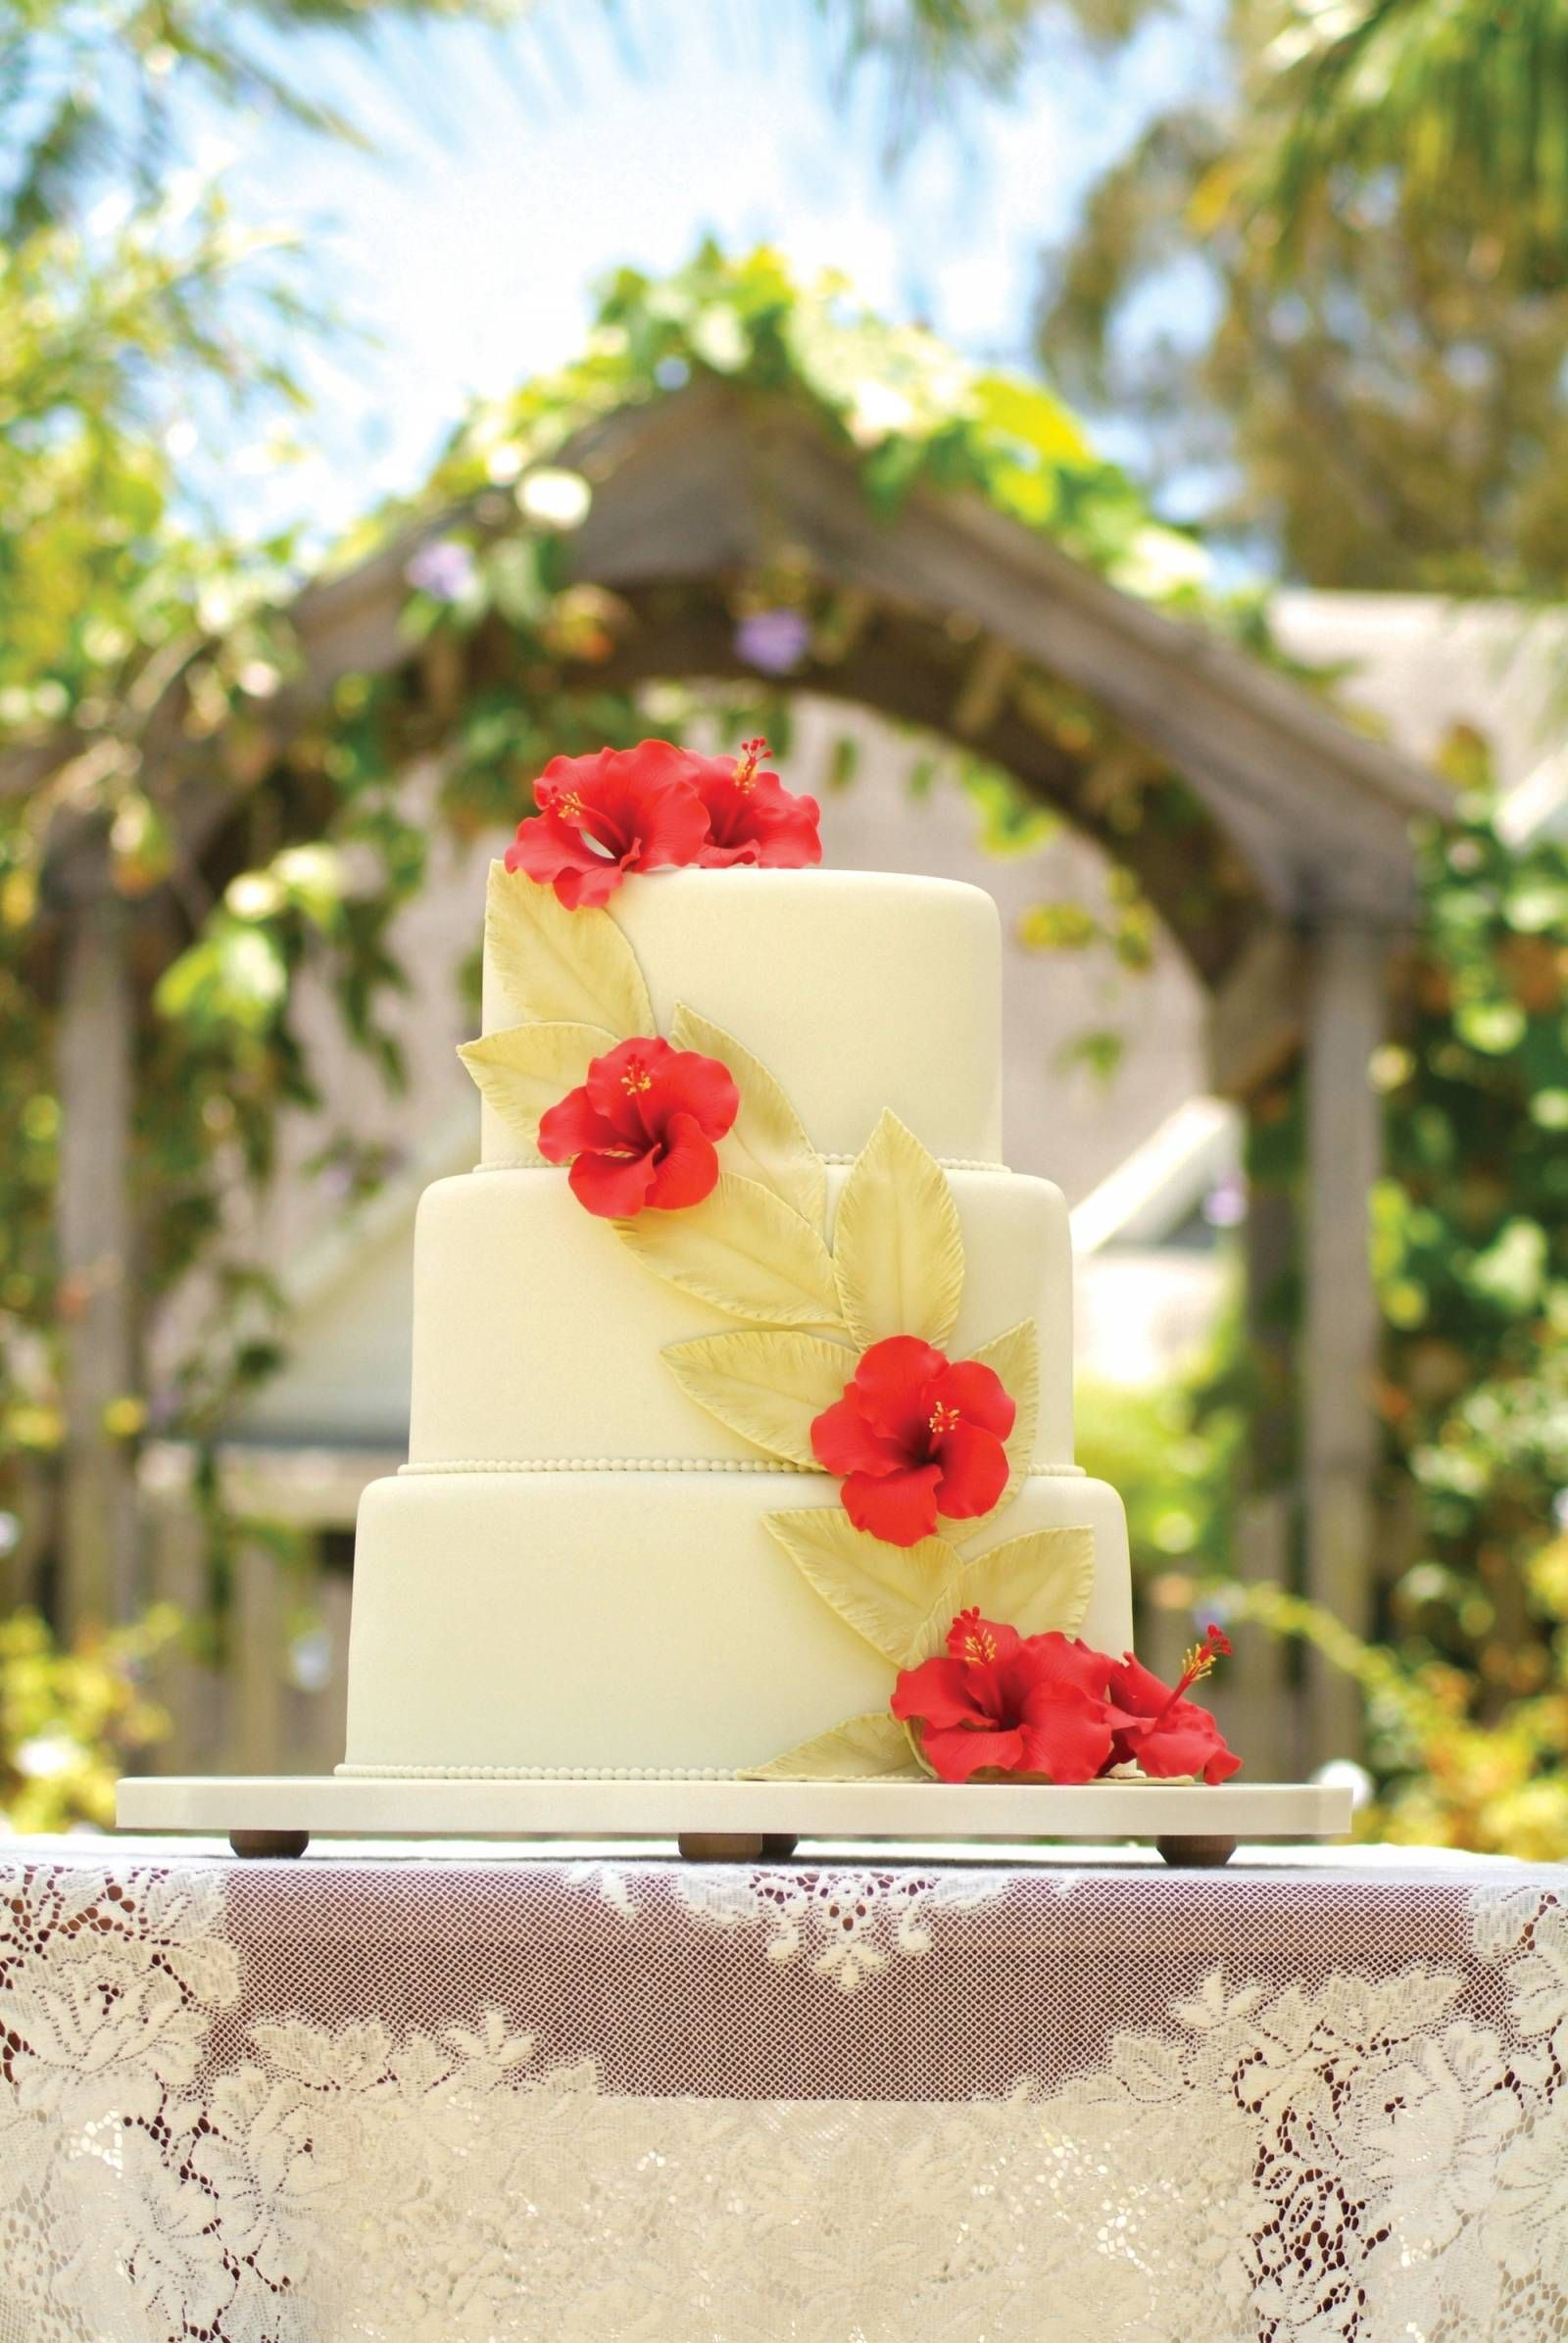 Honolulu cake designer Carmen Emerson Bass created these whimsical ...